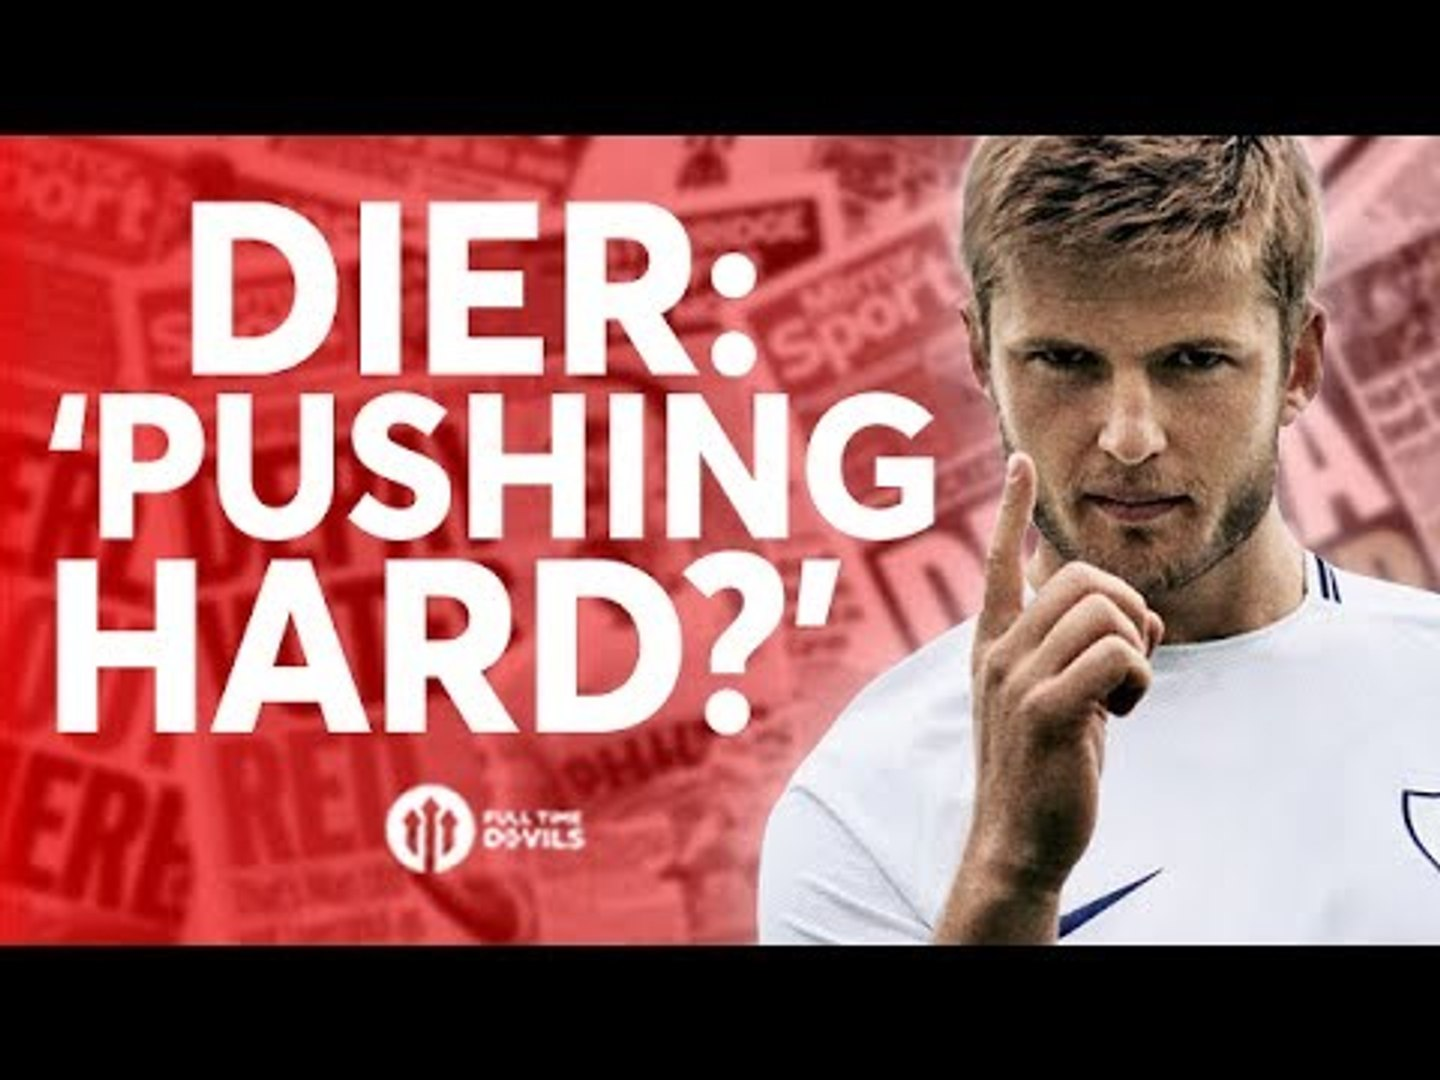 Eric Dier: United 'Pushing Hard'? Tomorrow's Manchester United Transfer News Today! #